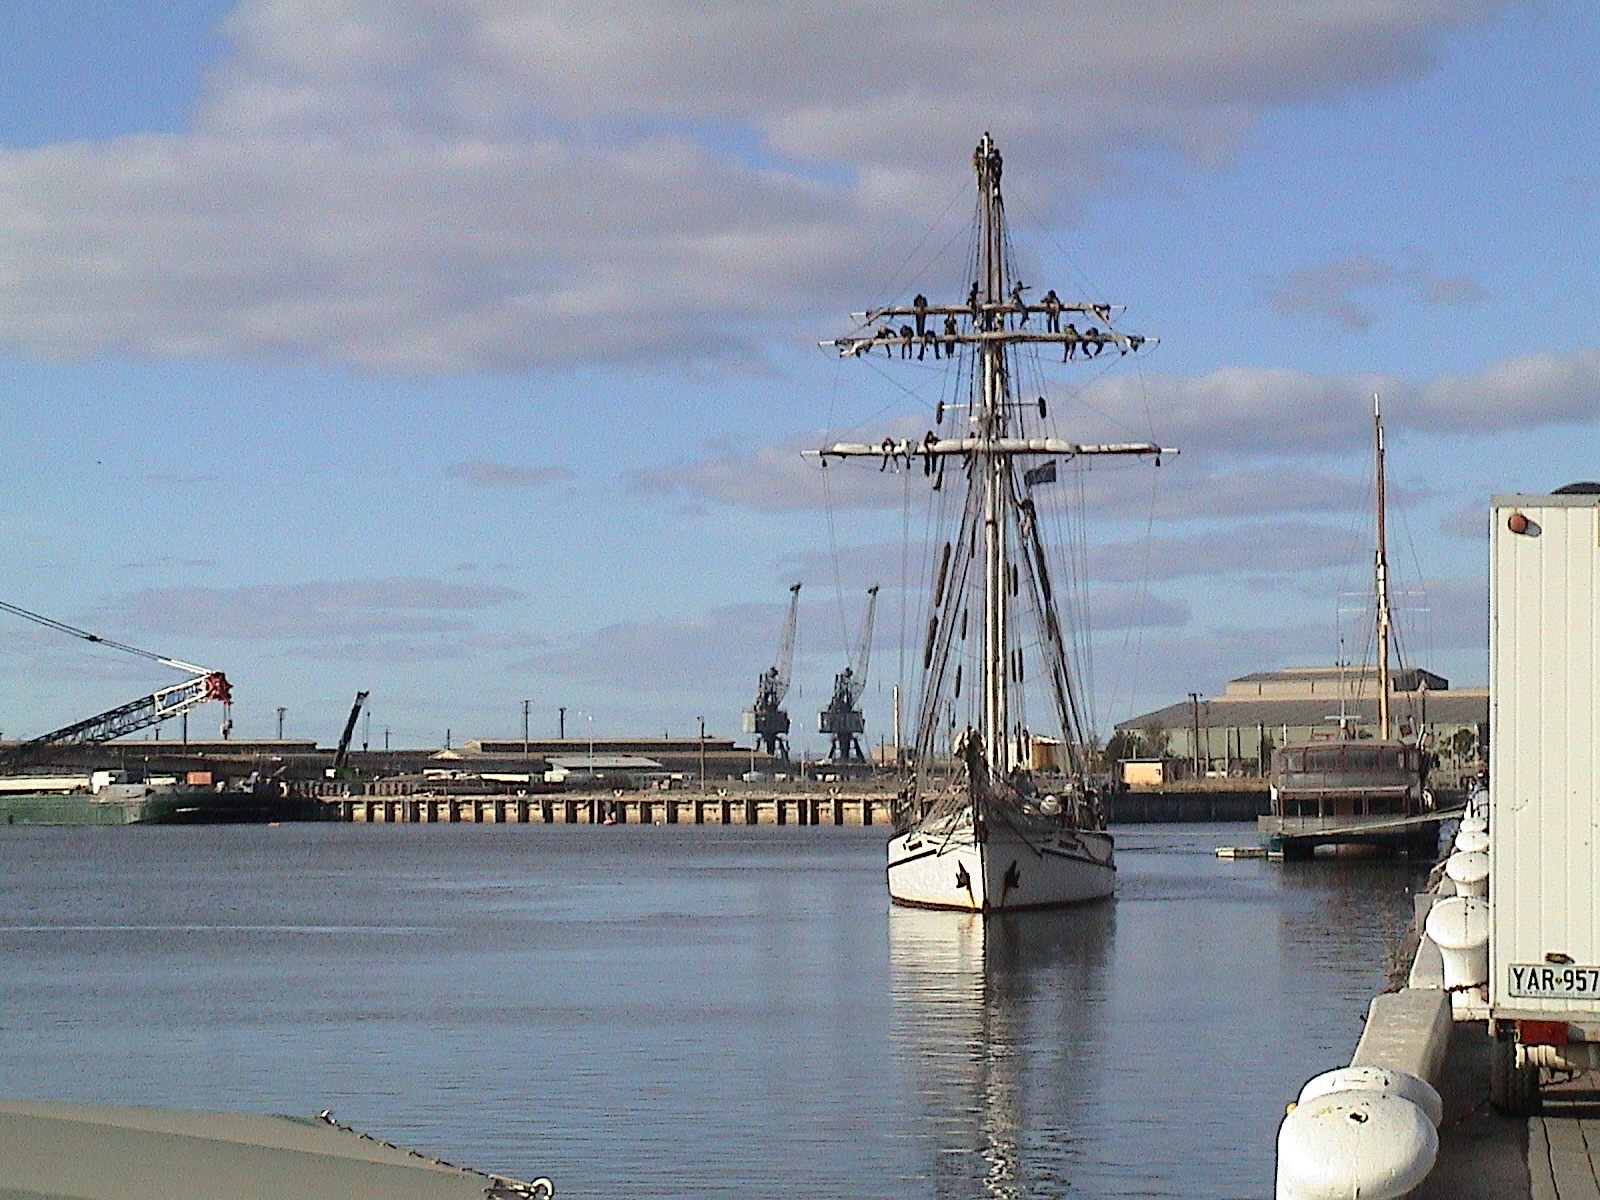 port adelaide - photo #15